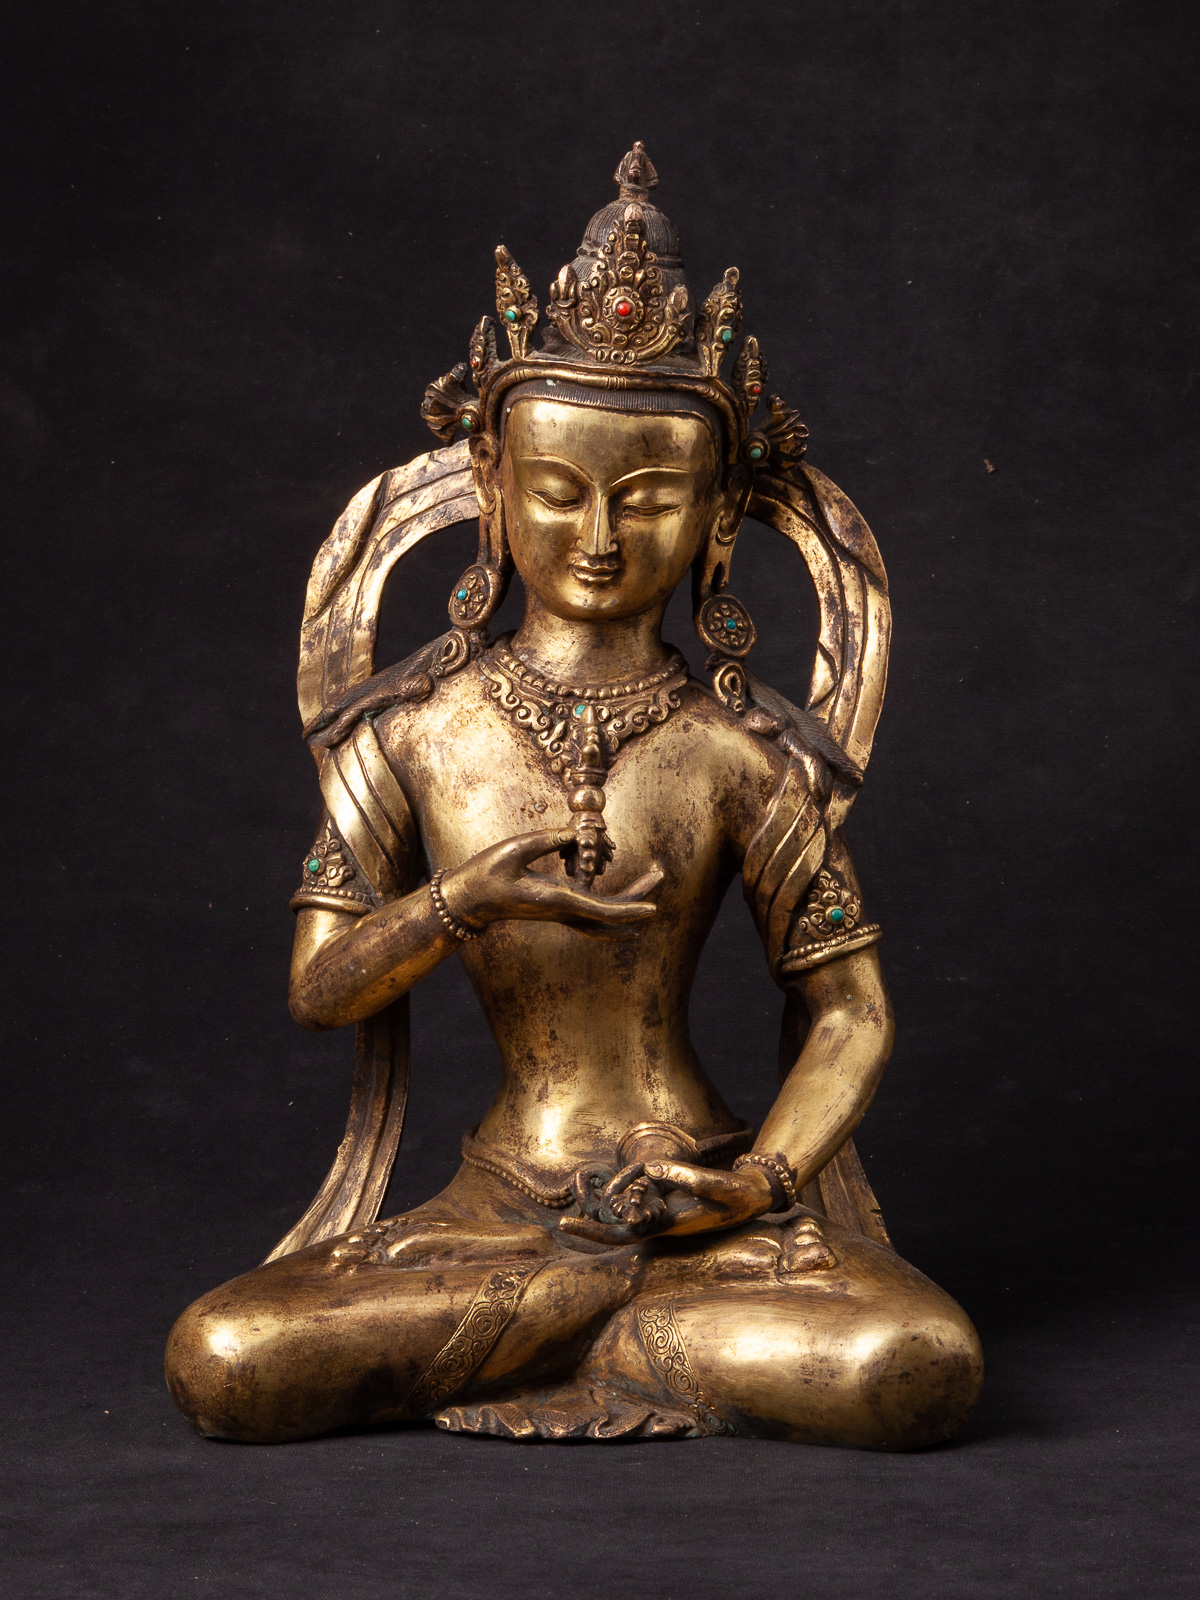 Antique Nepali bronze Lokeshor statue from Nepal made from Bronze